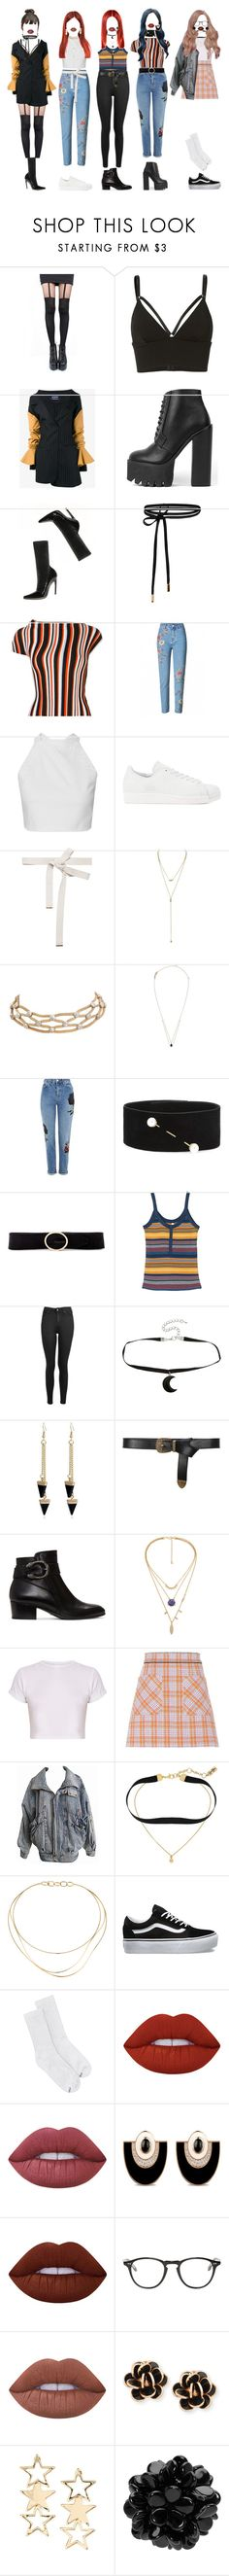 """""""[ Weekly Idol ] G-3"""" by xxeucliffexx ❤ liked on Polyvore featuring Pretty Polly, T By Alexander Wang, Jacquemus, Balenciaga, adidas Originals, Marni, Erica Lyons, Topshop, Dries Van Noten and Linea Pelle"""